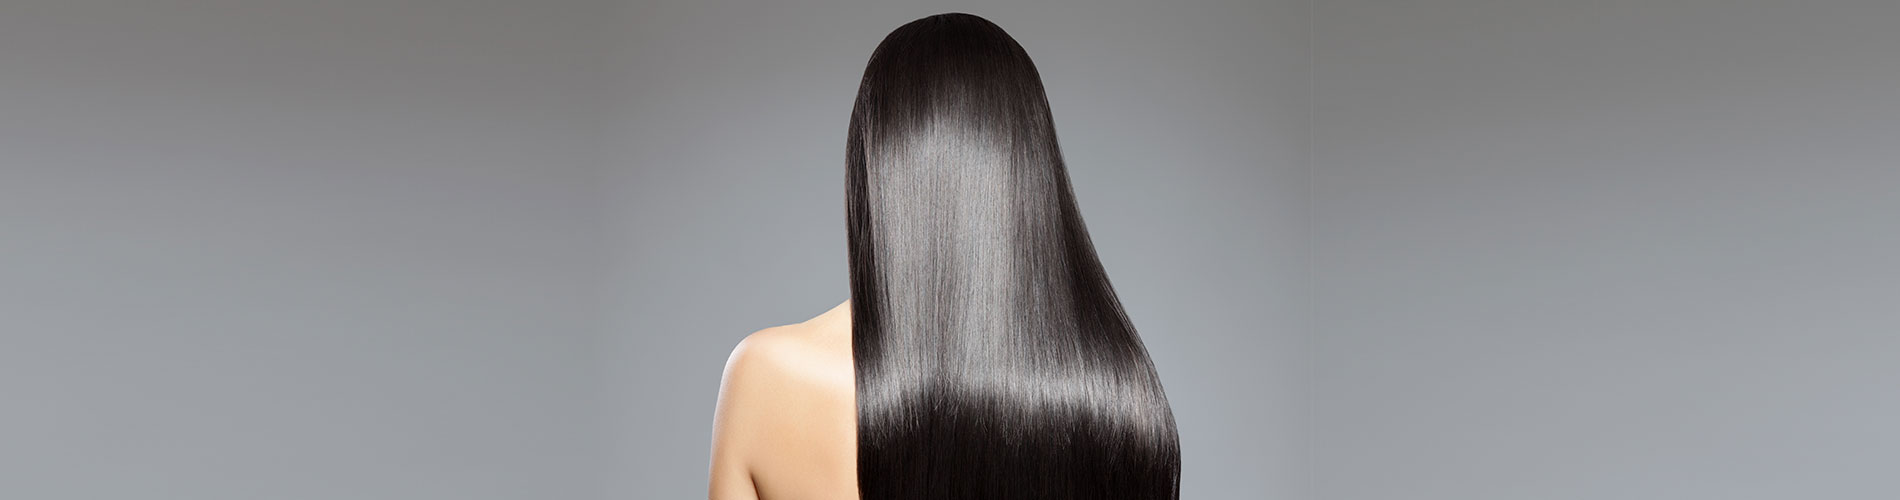 lady with long black healthy smooth hair and on grey background